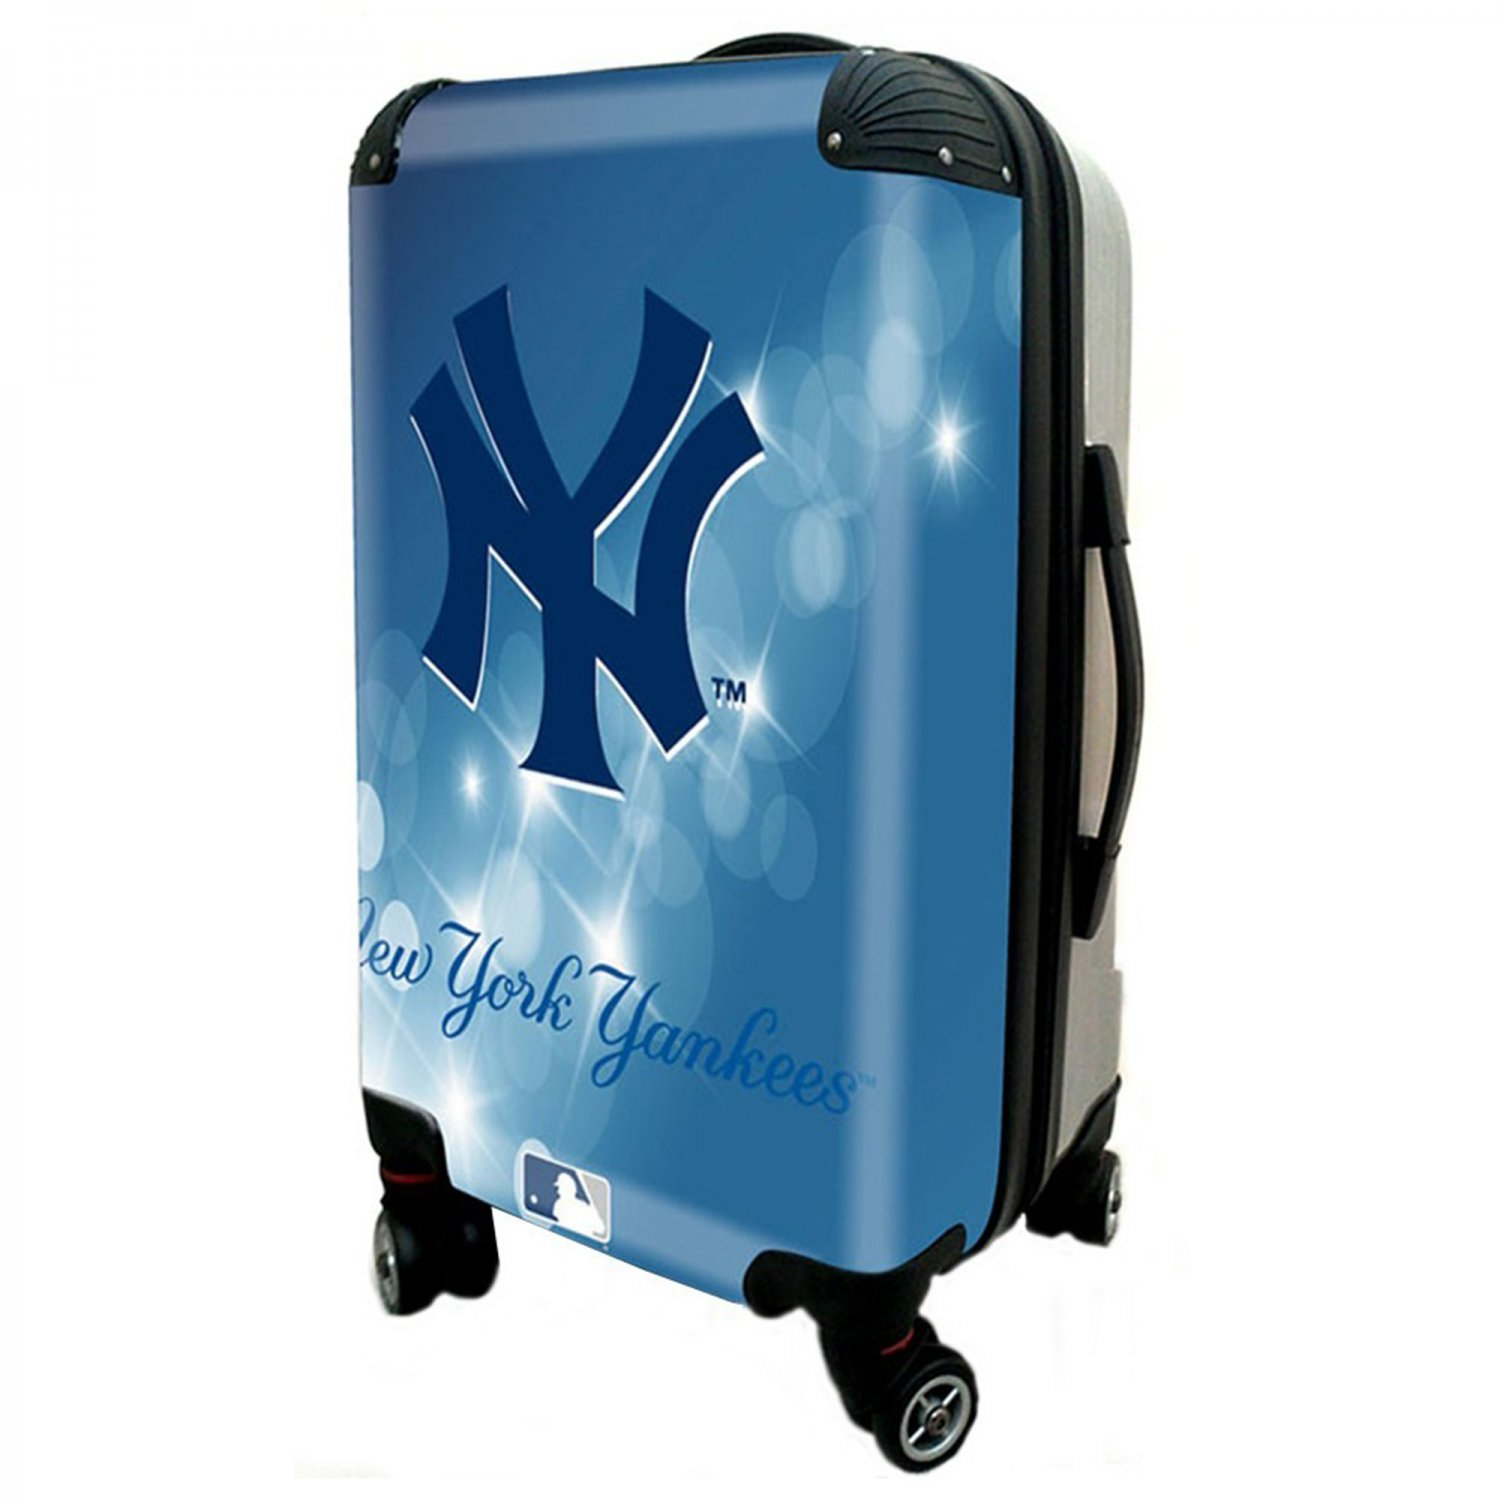 "New York Yankees, 21"" Clear Poly Carry-On Luggage by Kaybull #NYY11"